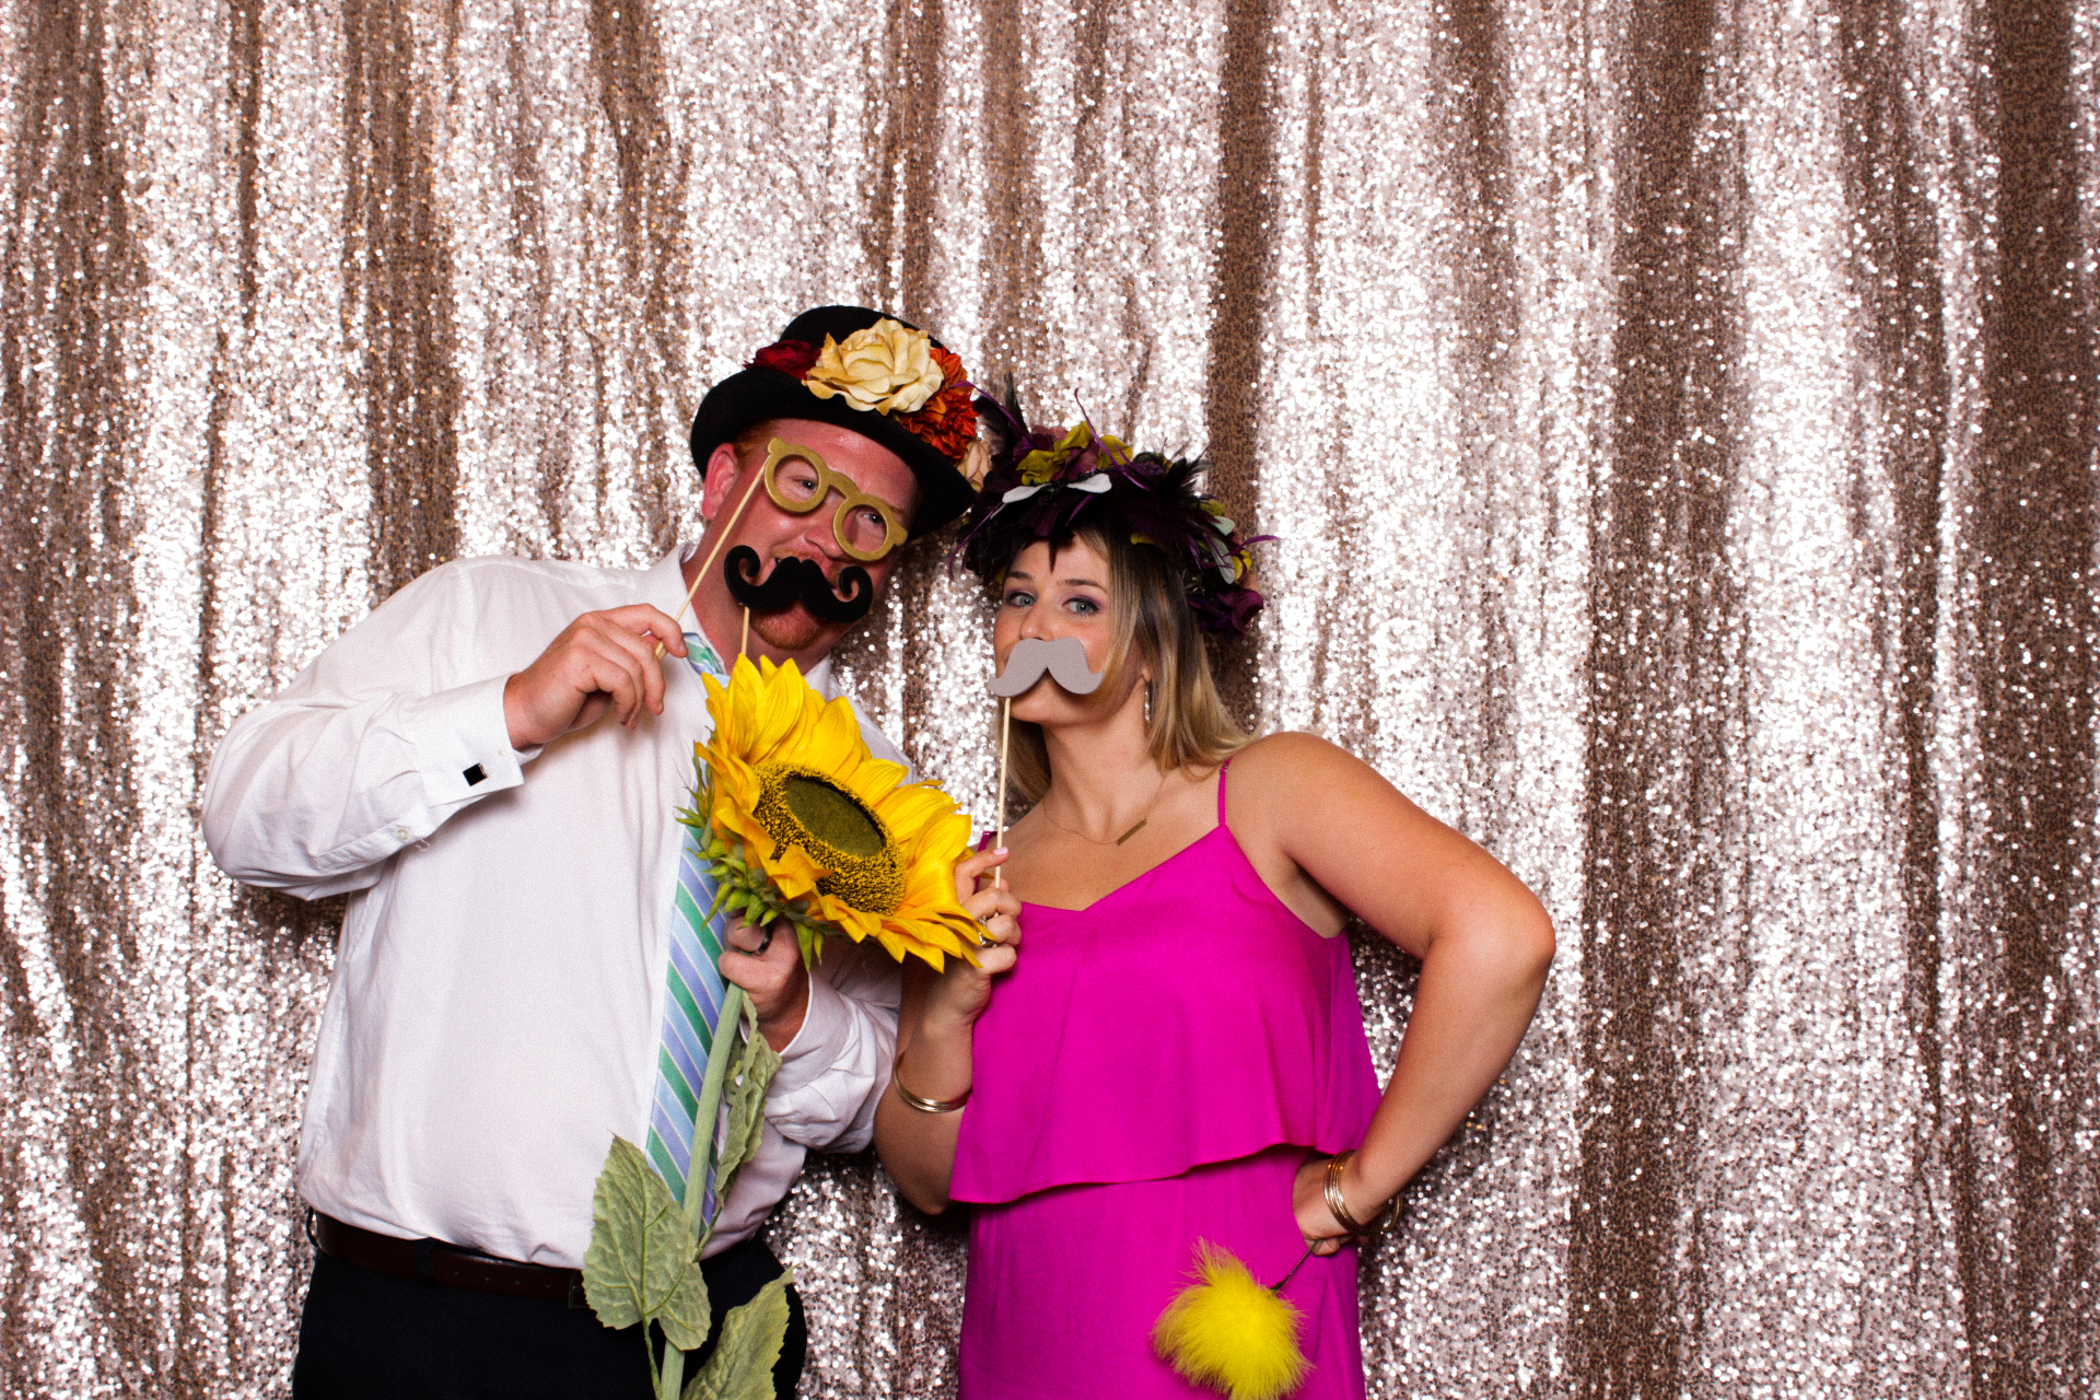 The_Reverie_Booth-Boca_Raton_Photobooth-Wedding_Photobooth_Florida-Florida_Photobooth_Rental-Wedding_Photobooth-042.jpg